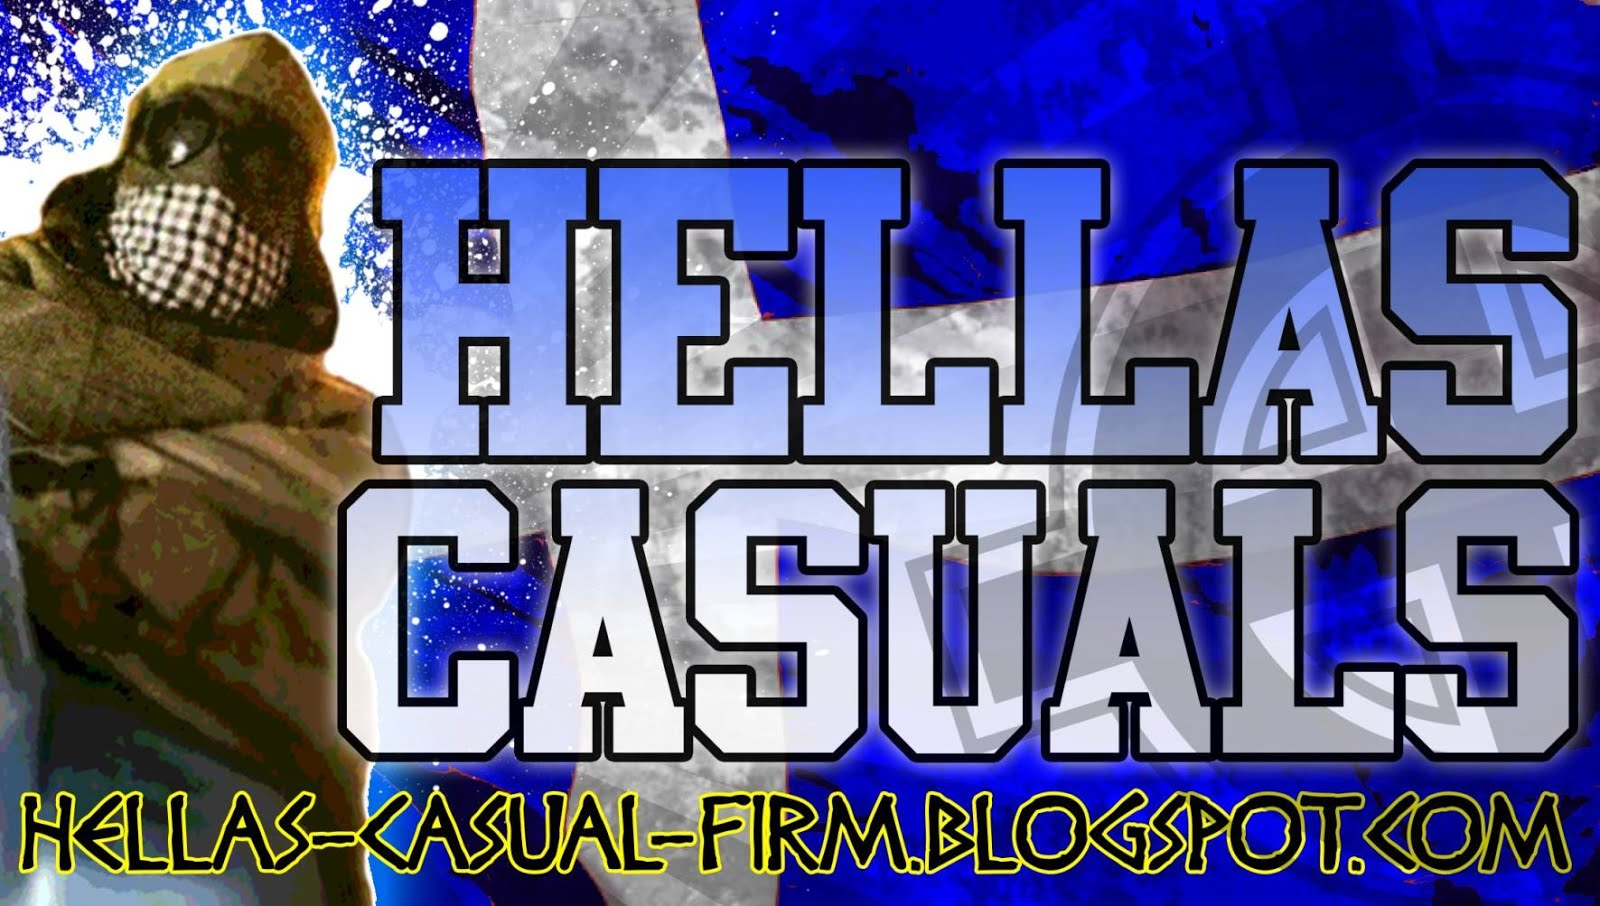 HELLAS CASUALS